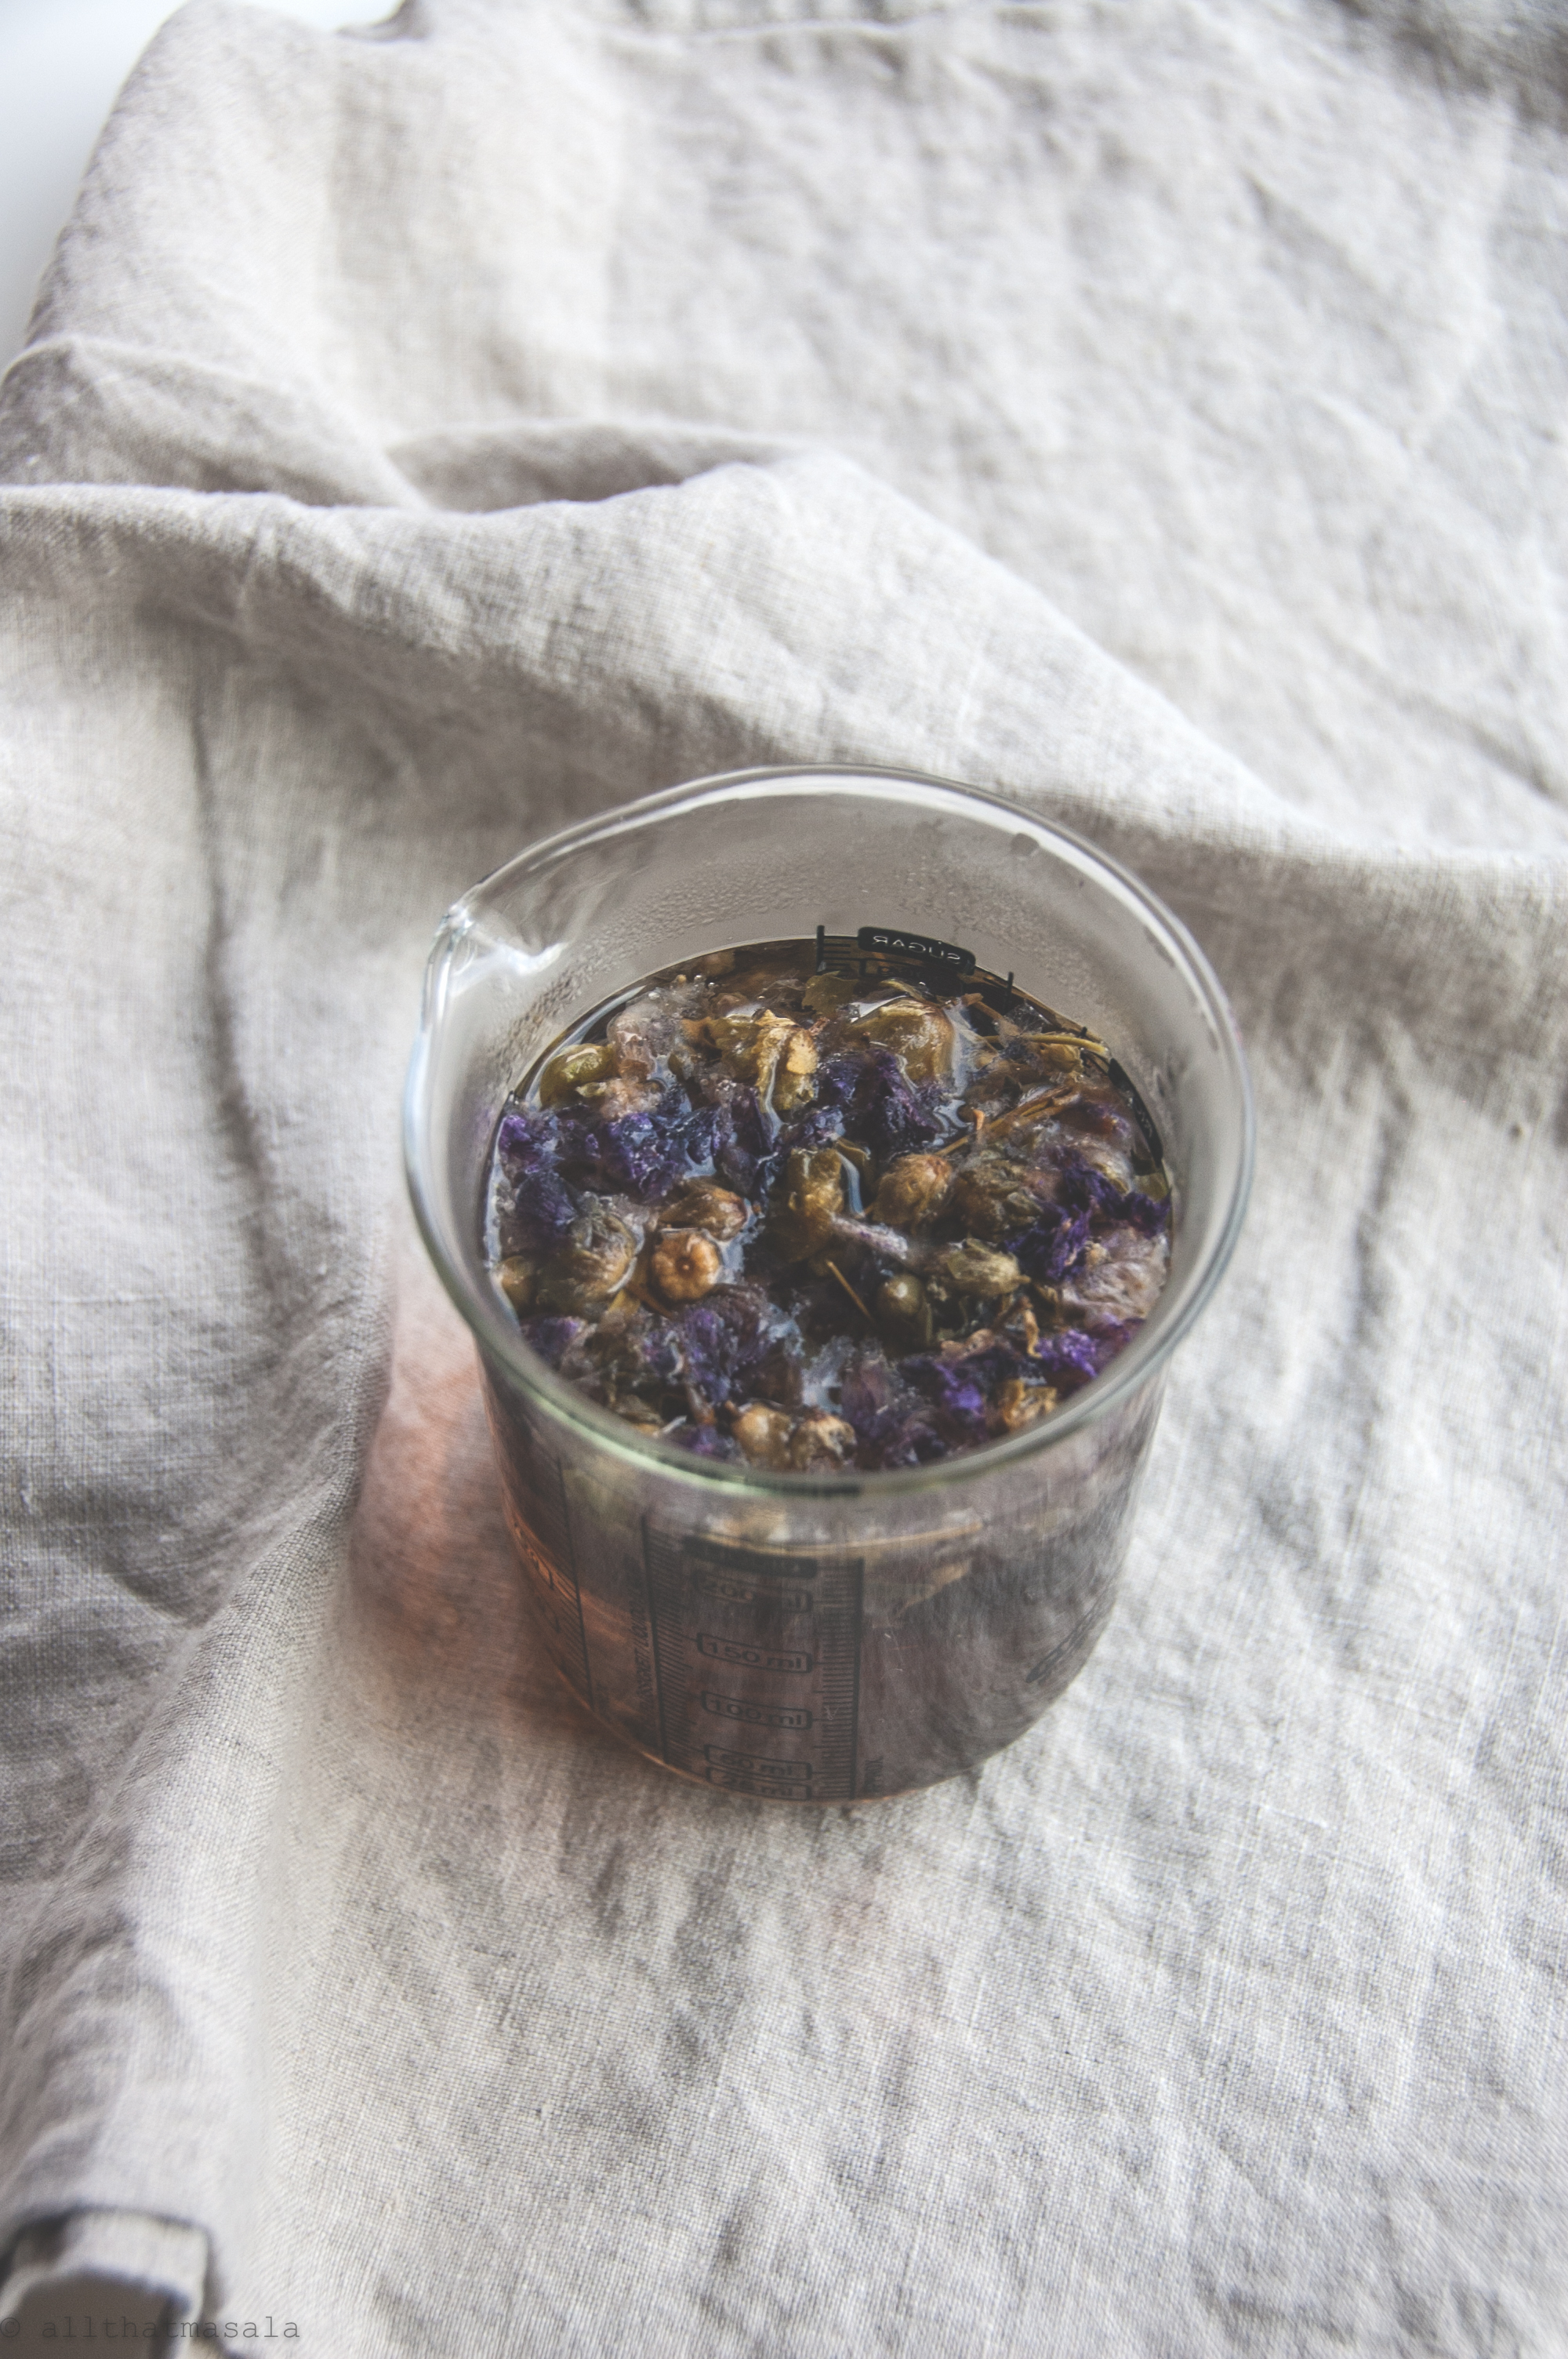 This green iced tea is made of dry violets, yes edible flowers! The recipe itself took me 5 minutes but the flavours were so divine!